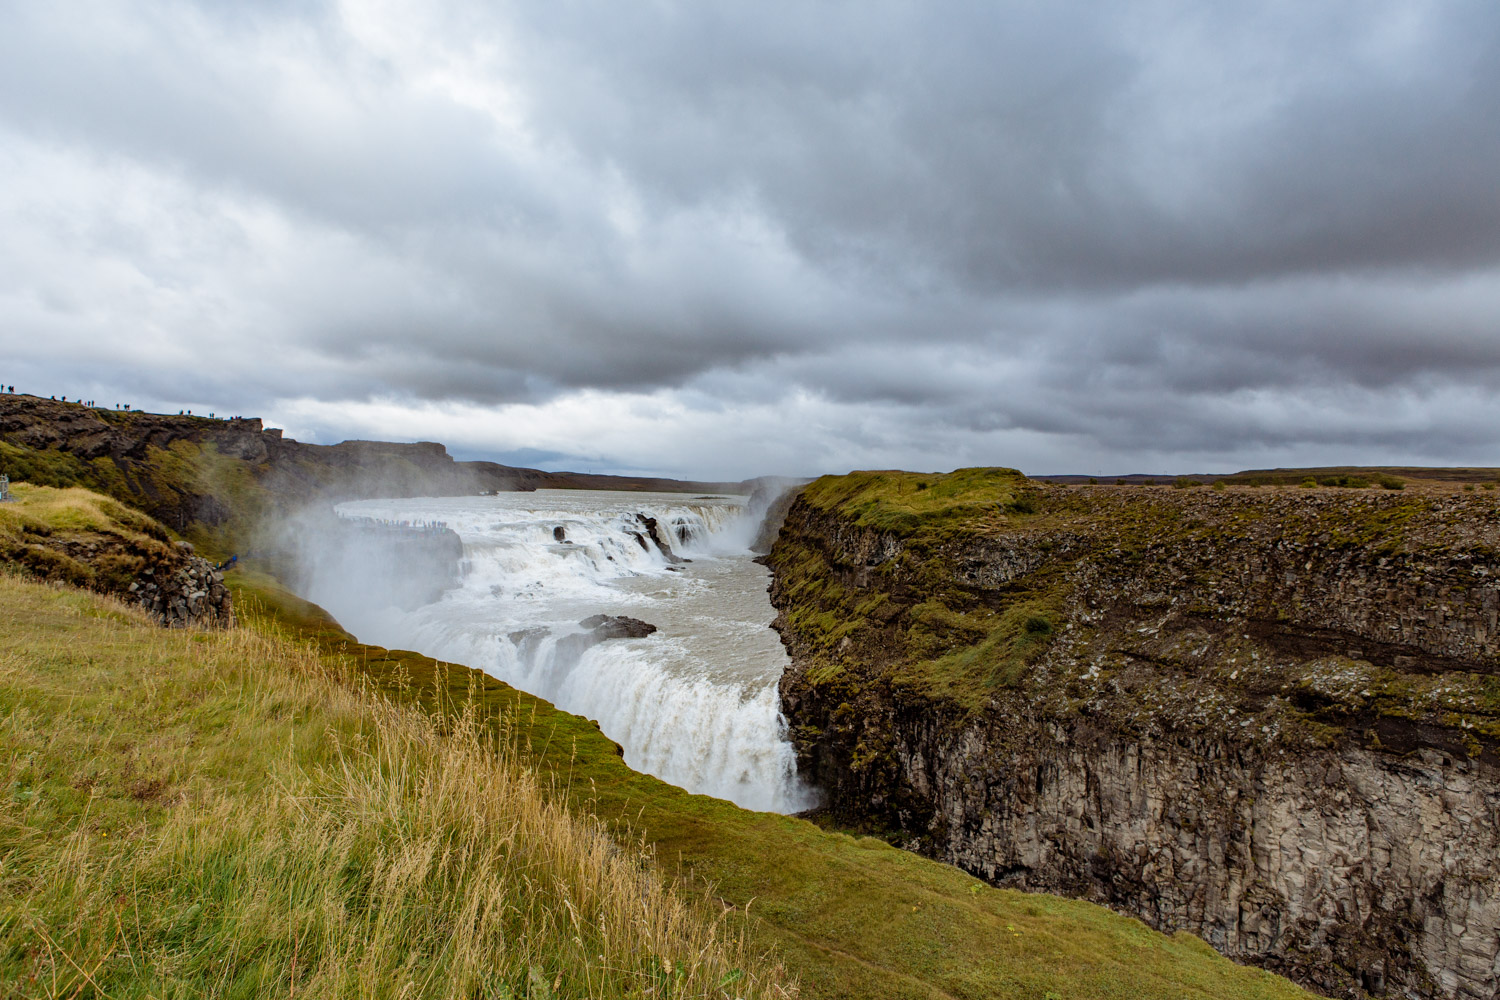 Touring-Iceland-5a.jpg